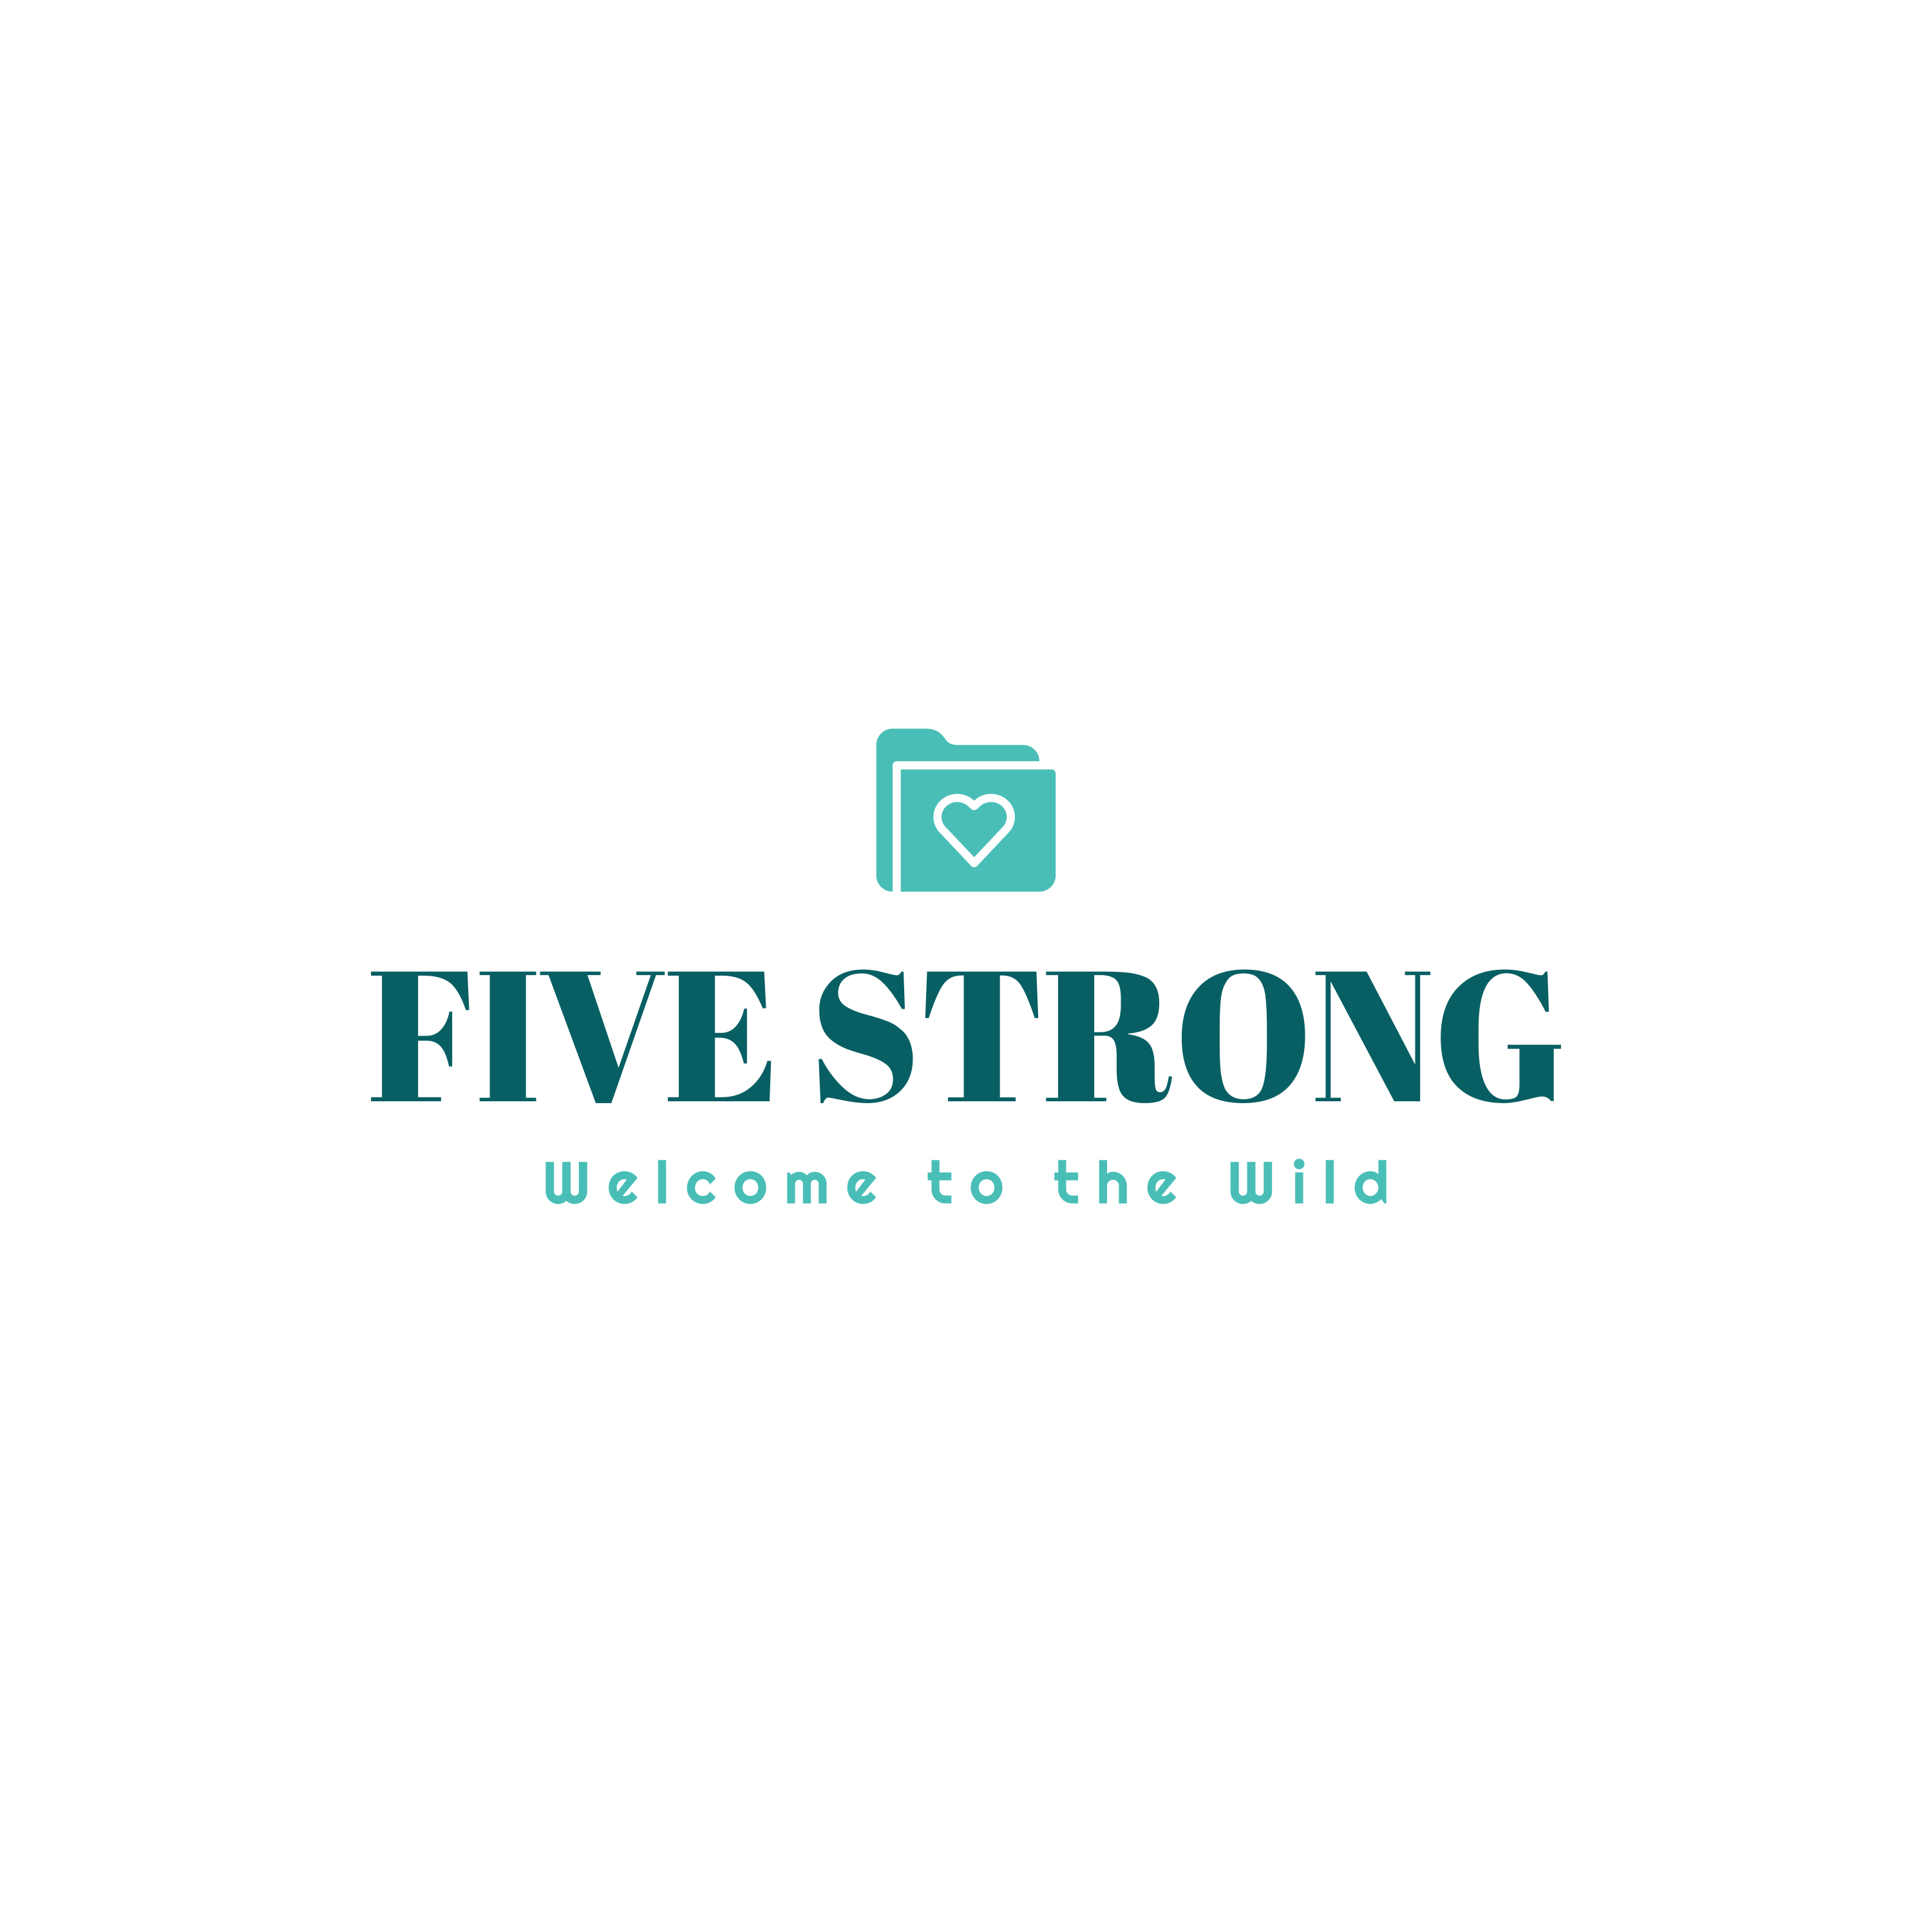 FIVE STRONG